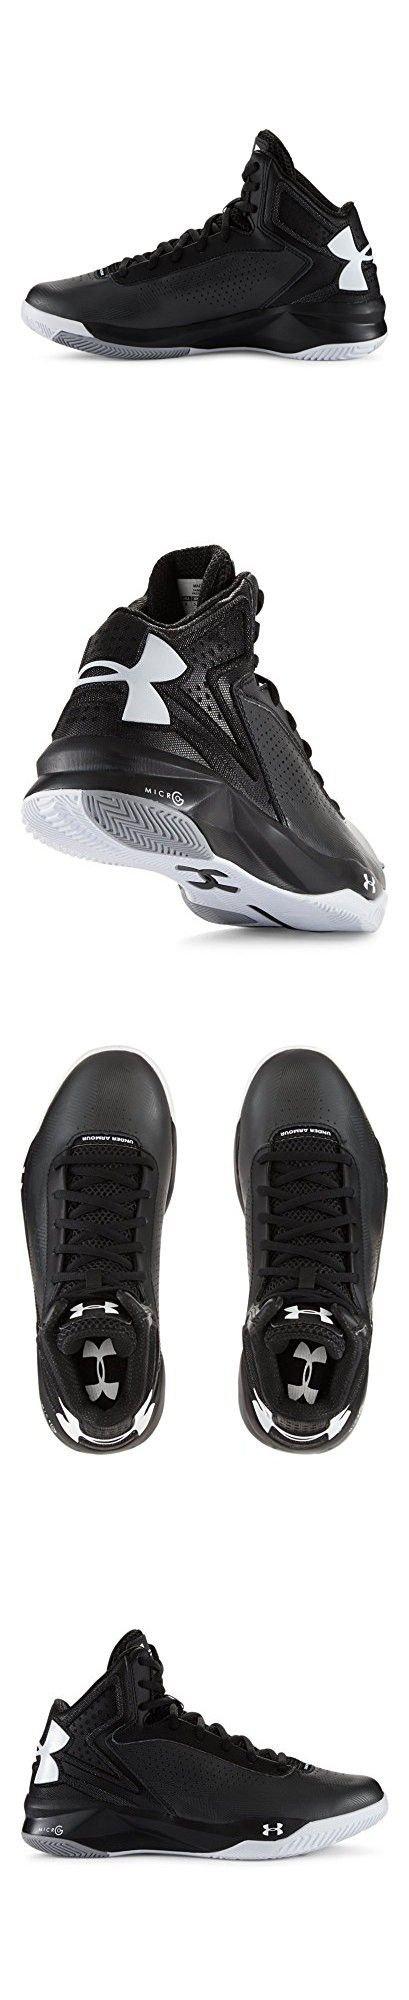 7e2c622c536 Under Armour Women s UA Micro G Torch Basketball Shoes 8.5 Black ...